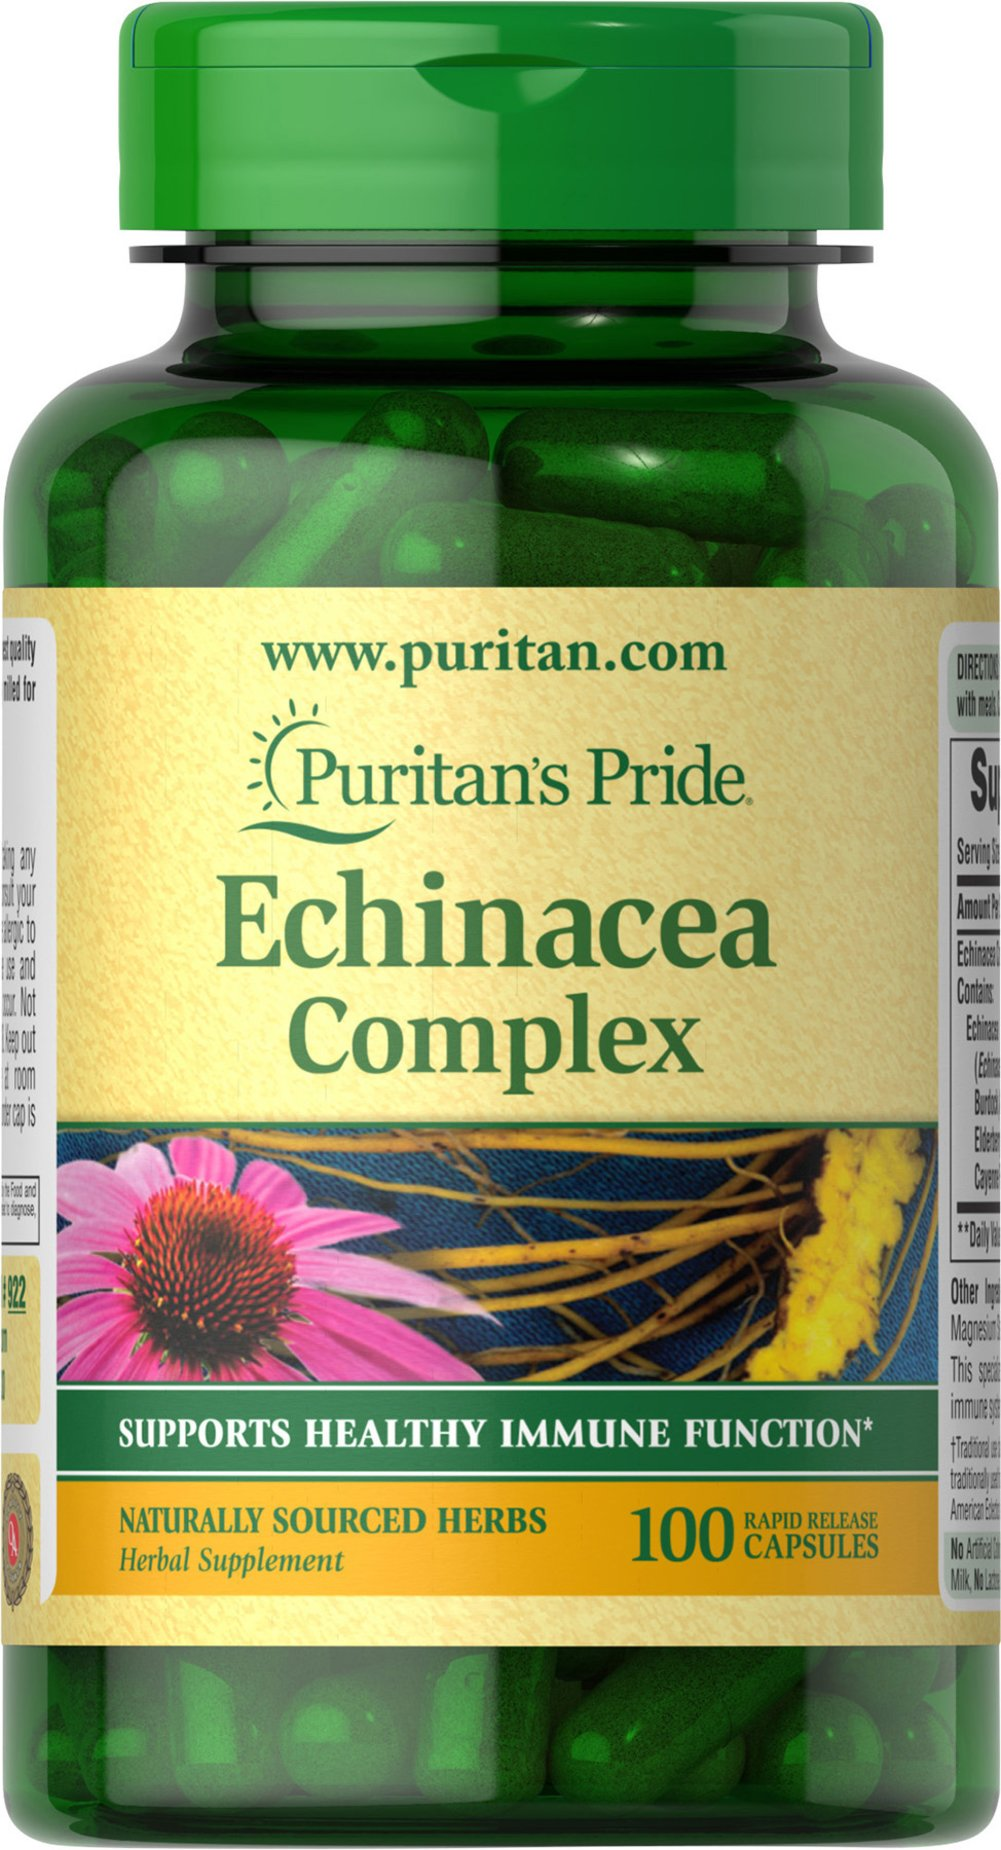 Echinacea with Goldenseal Root <p>Echinacea is one of the world's leading herbs for immune system support, while Goldenseal has a long history of traditional use.** Puritan's Pride Echinacea / Goldenseal Root is expertly blended so you receive a synergistic formula that reflects the best Mother Nature has to offer.</p><p>Puritan's Pride's Guarantee: We use only the finest quality herbs and spices. Each is screened and finely milled for quick release.  Puritan's Pri